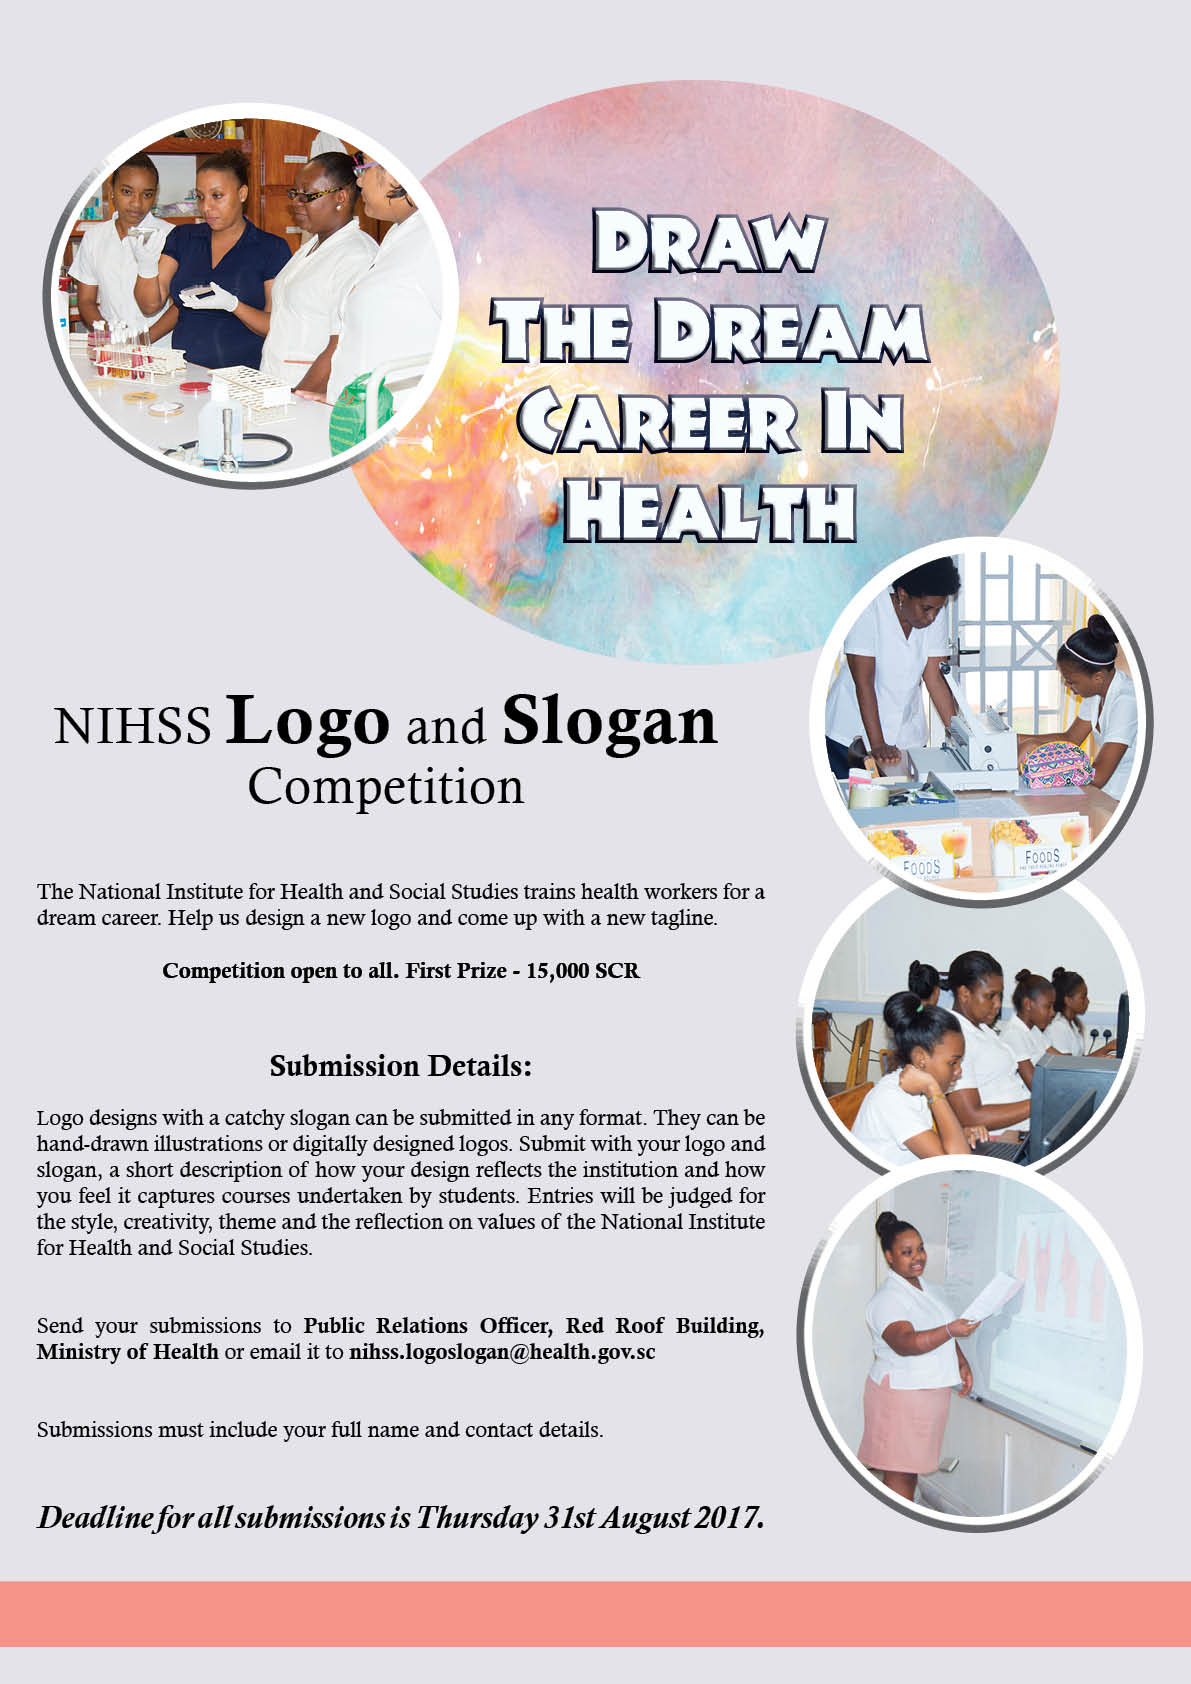 NIHSS LOGO/SLOGAN COMPETITION - Ministry of Health